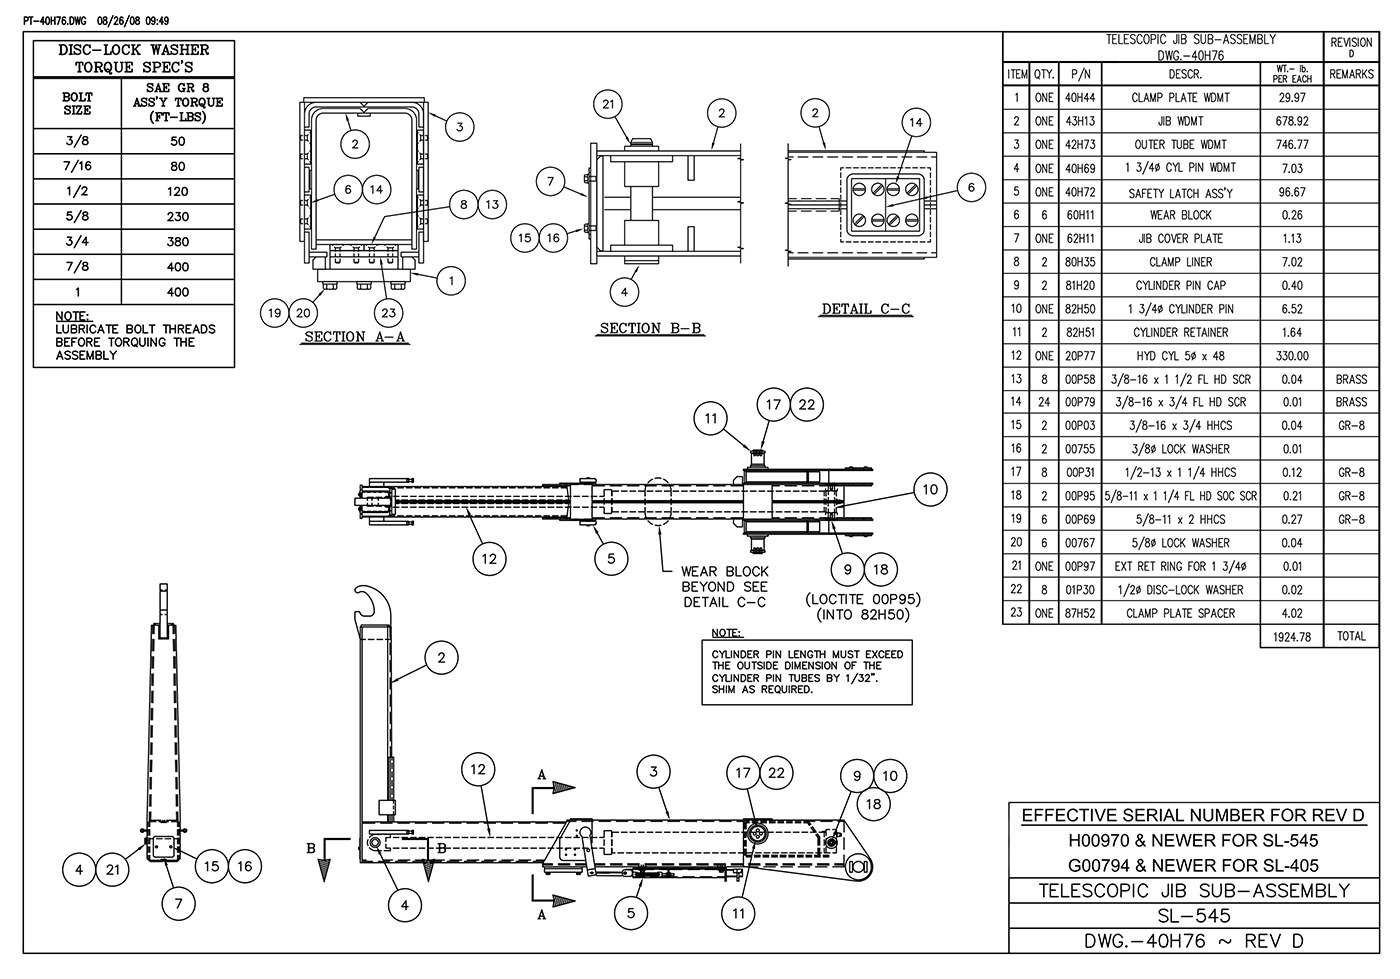 SL-545 Telescopic Jib Sub-Assembly Diagram